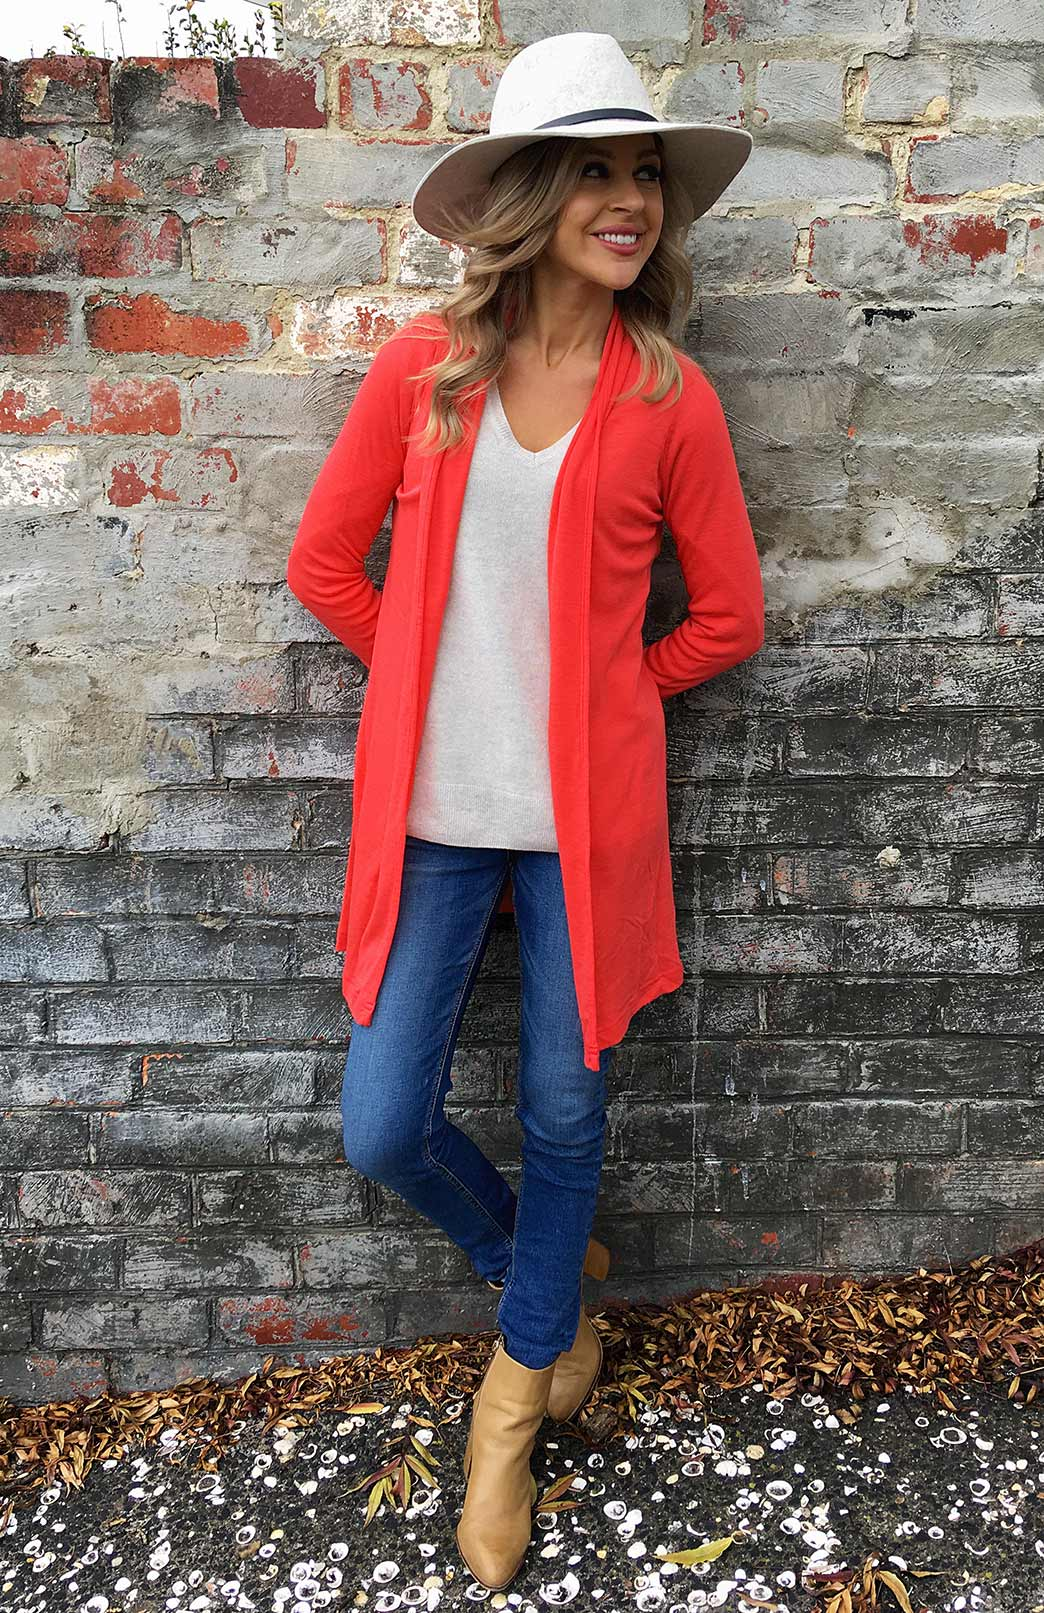 Drape Cardigan - Lightweight - Women's Pink Wool Drape Cardigan with no buttons or fastenings - Smitten Merino Tasmania Australia